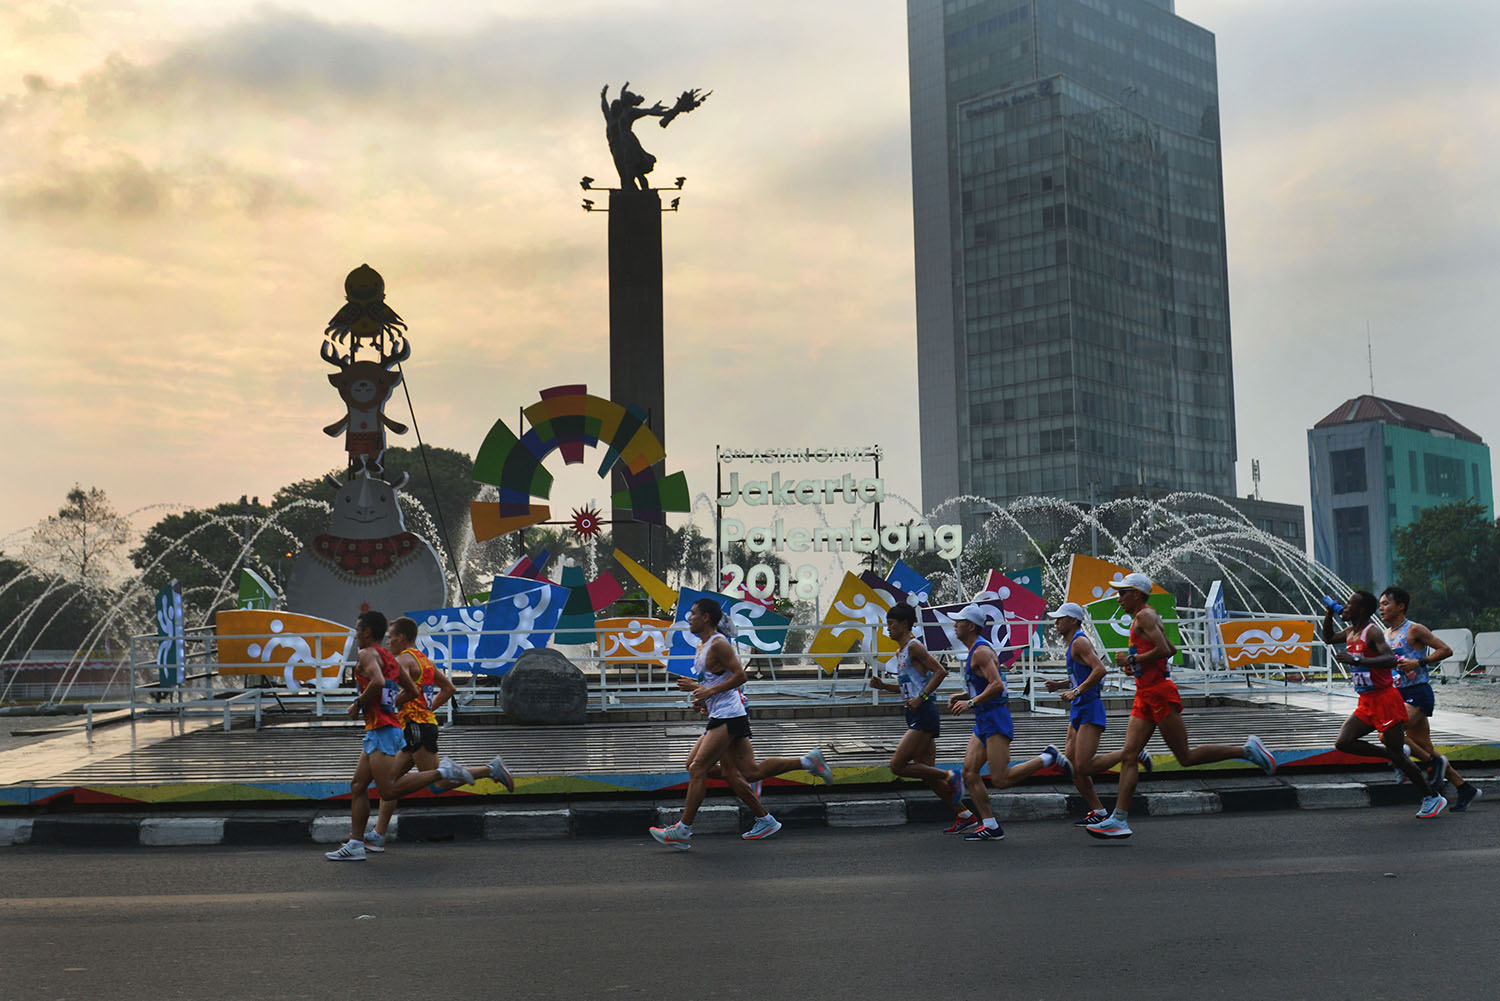 Lari Marathon Asian Games 2018